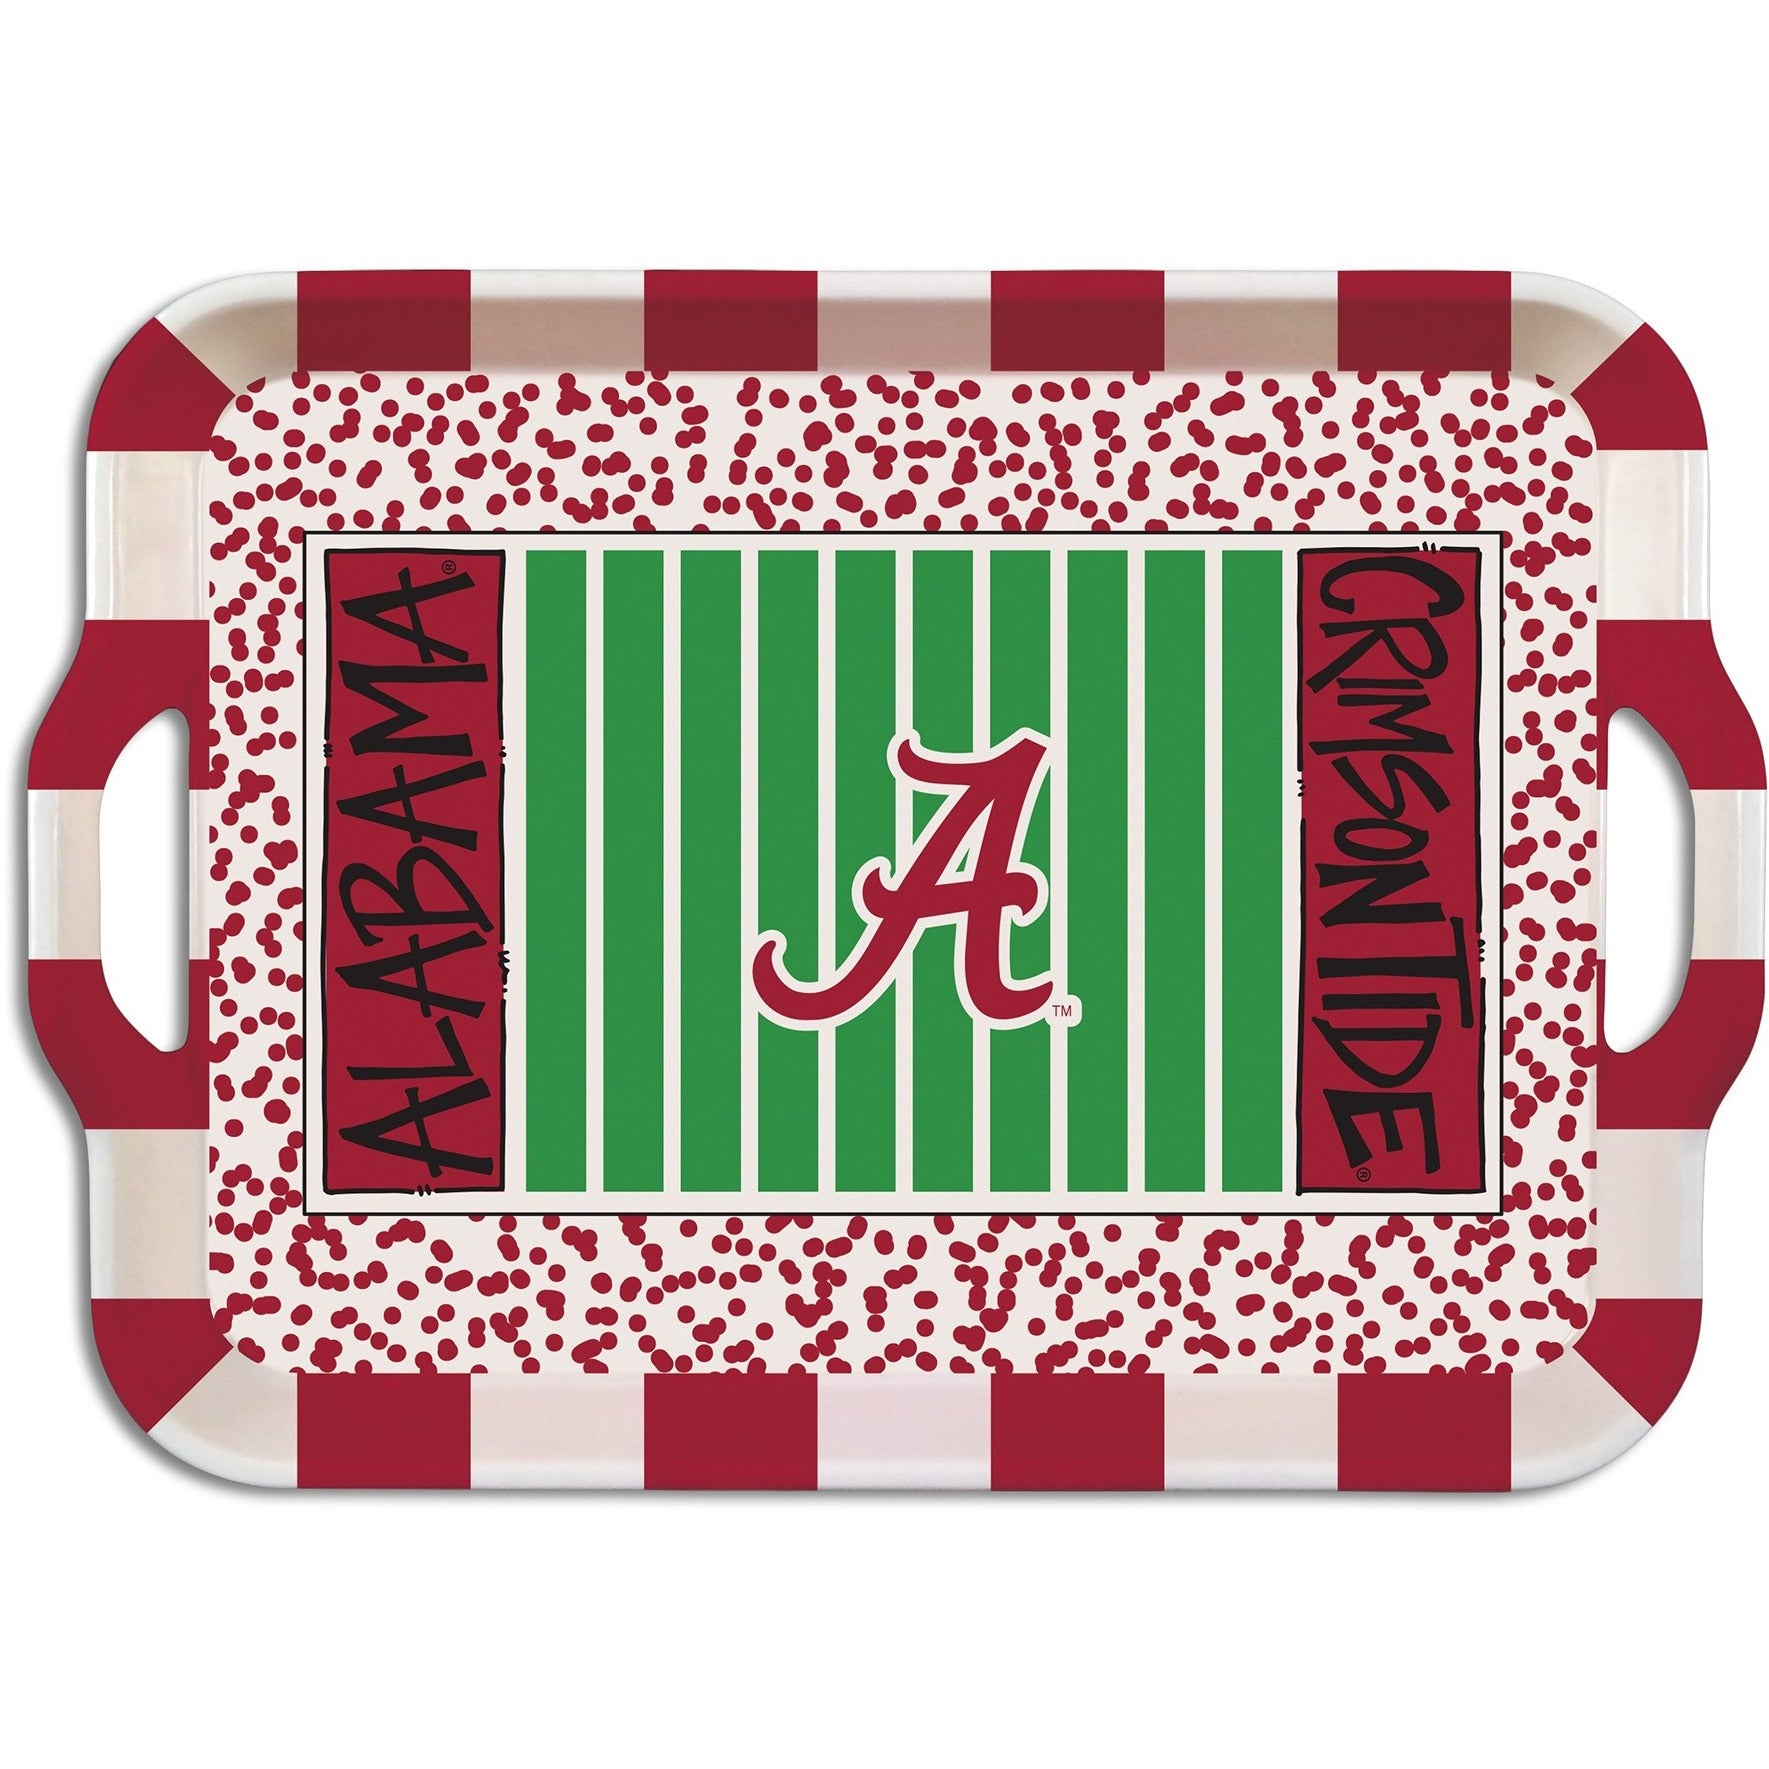 University Of Alabama Melamine Tray Zokee